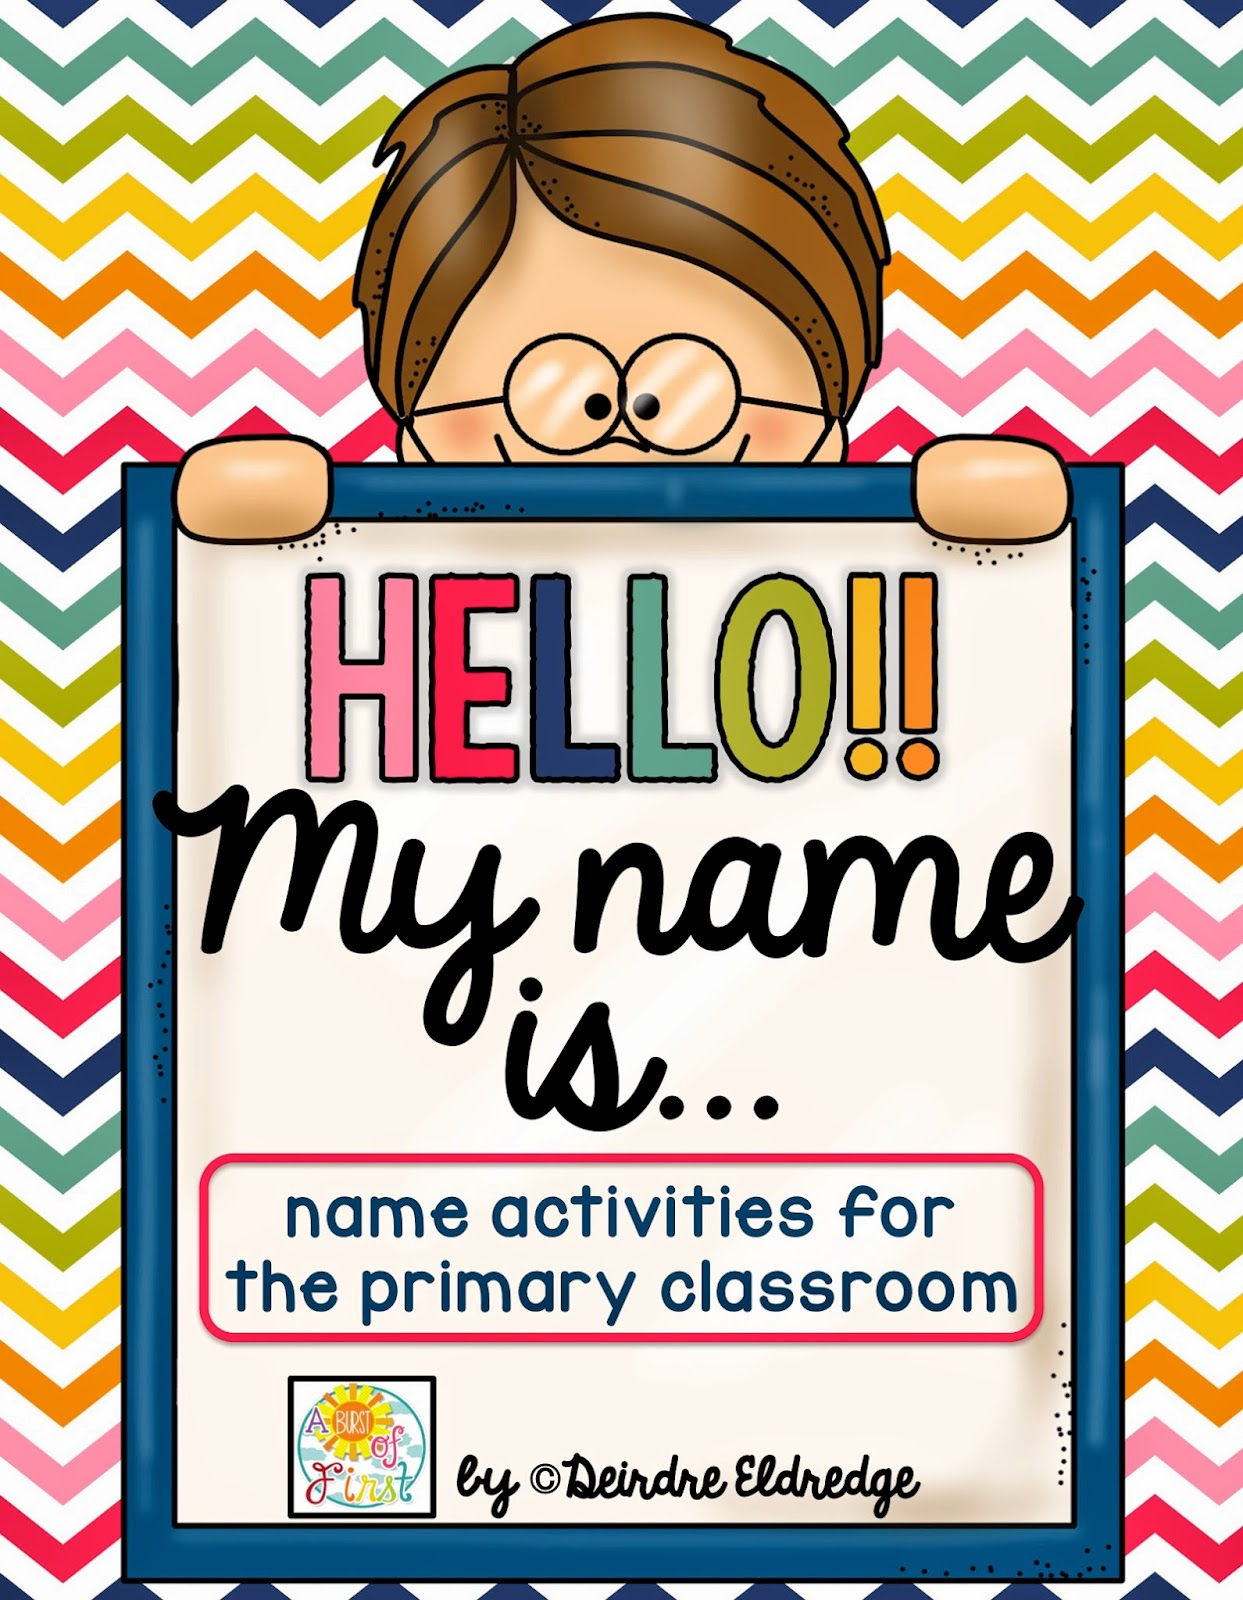 http://www.teacherspayteachers.com/Product/Hello-My-Name-isName-Activities-for-the-Primary-Classroom-1424733